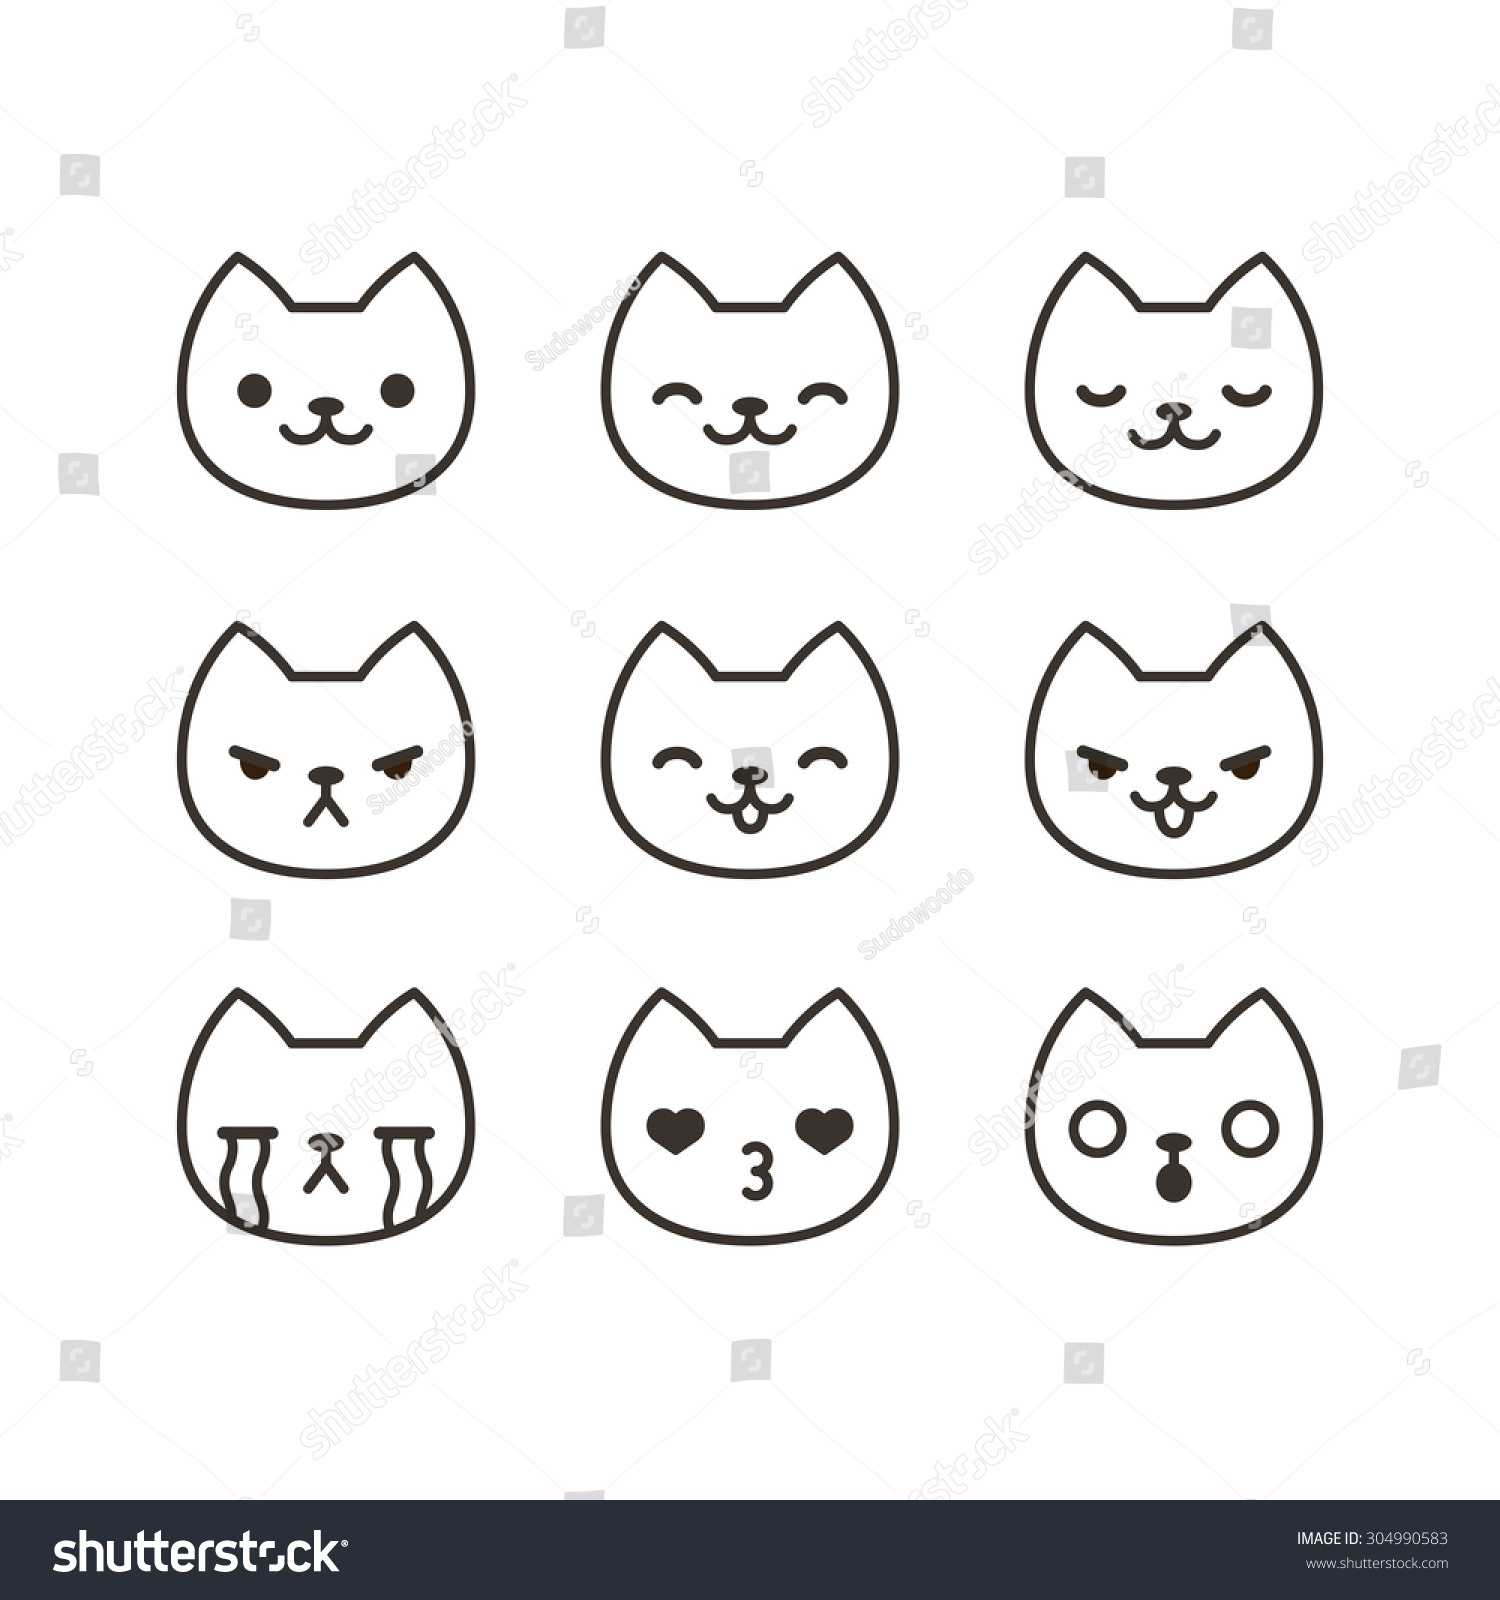 Set Cute Cat Emoticons Different Expressions Stock Vector ...